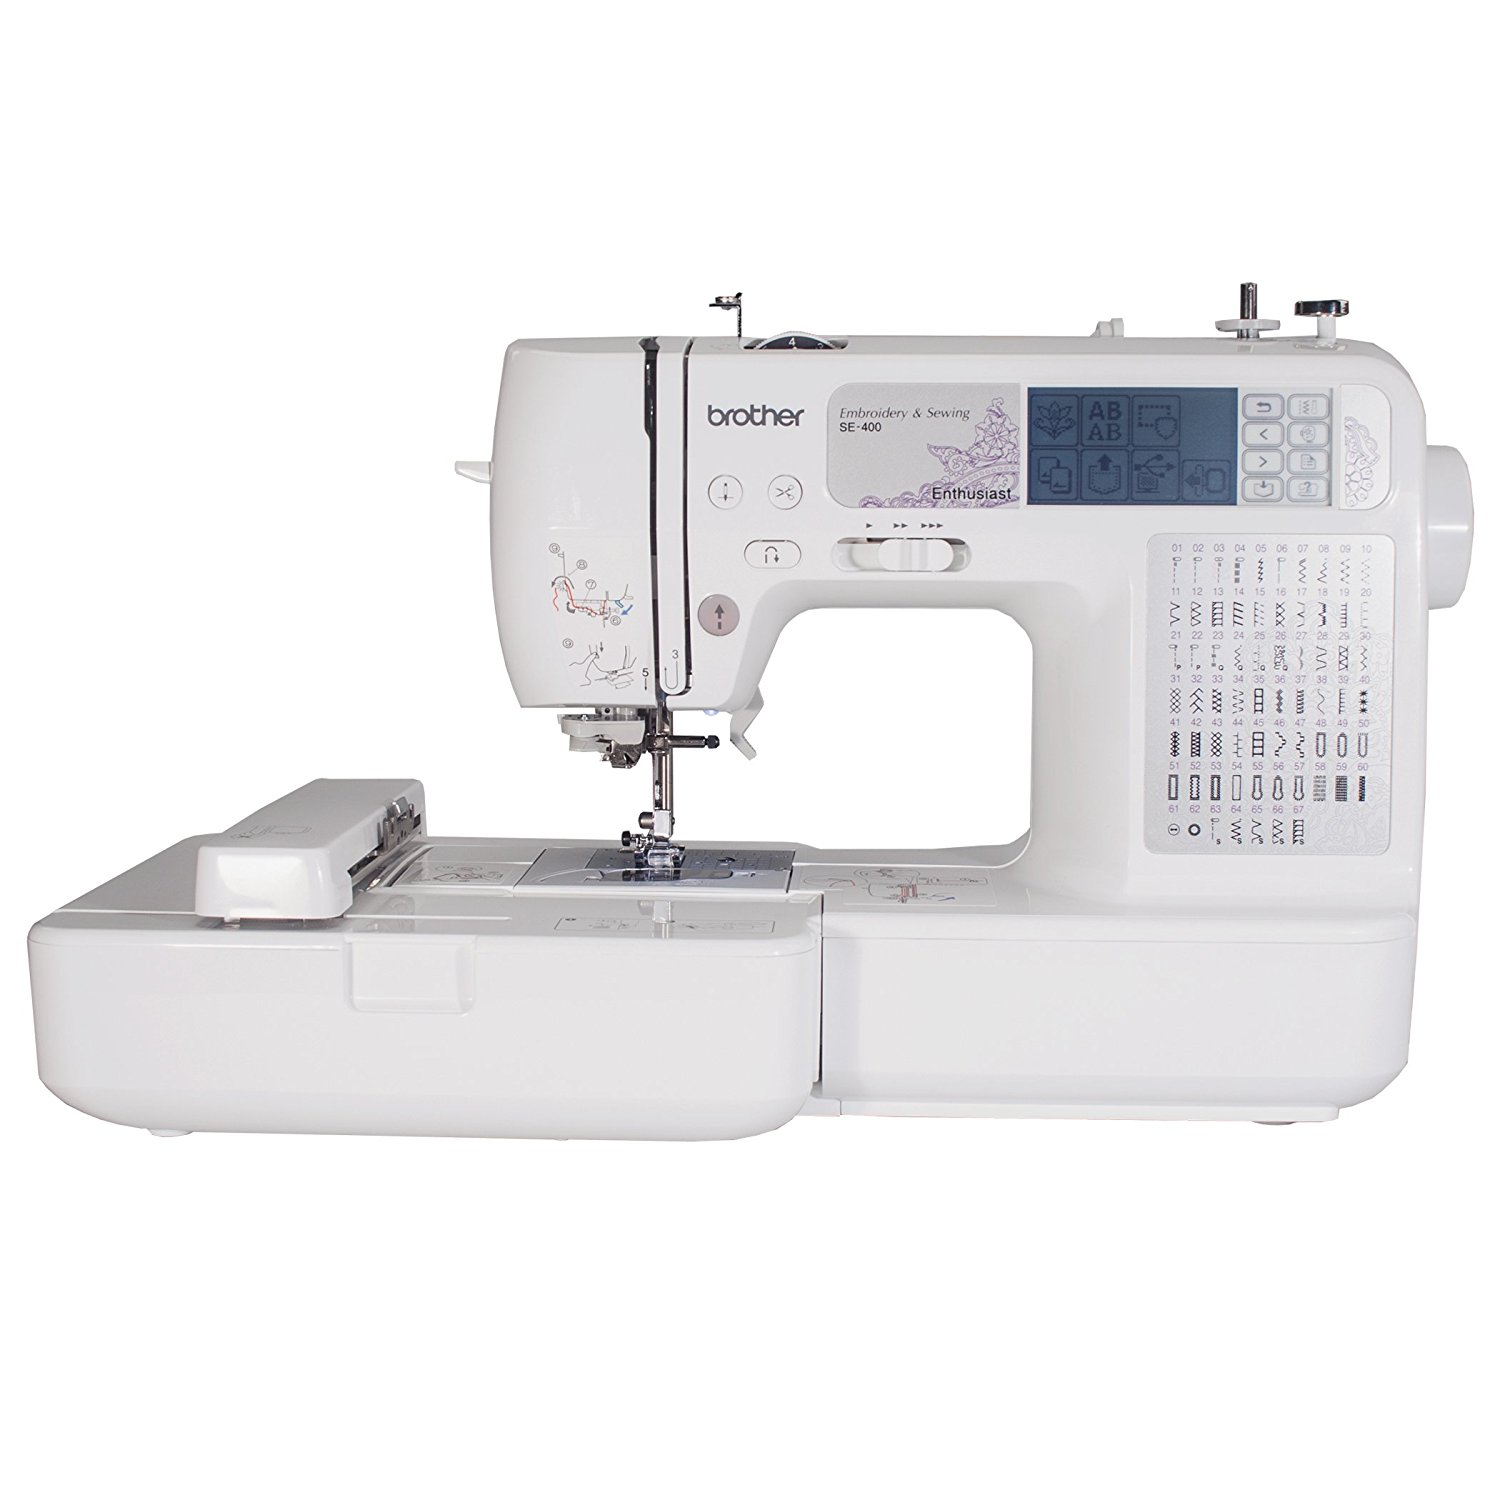 Best Brother Sewing & Embroidery Machine Review: The best combo machine from Brother you can buy